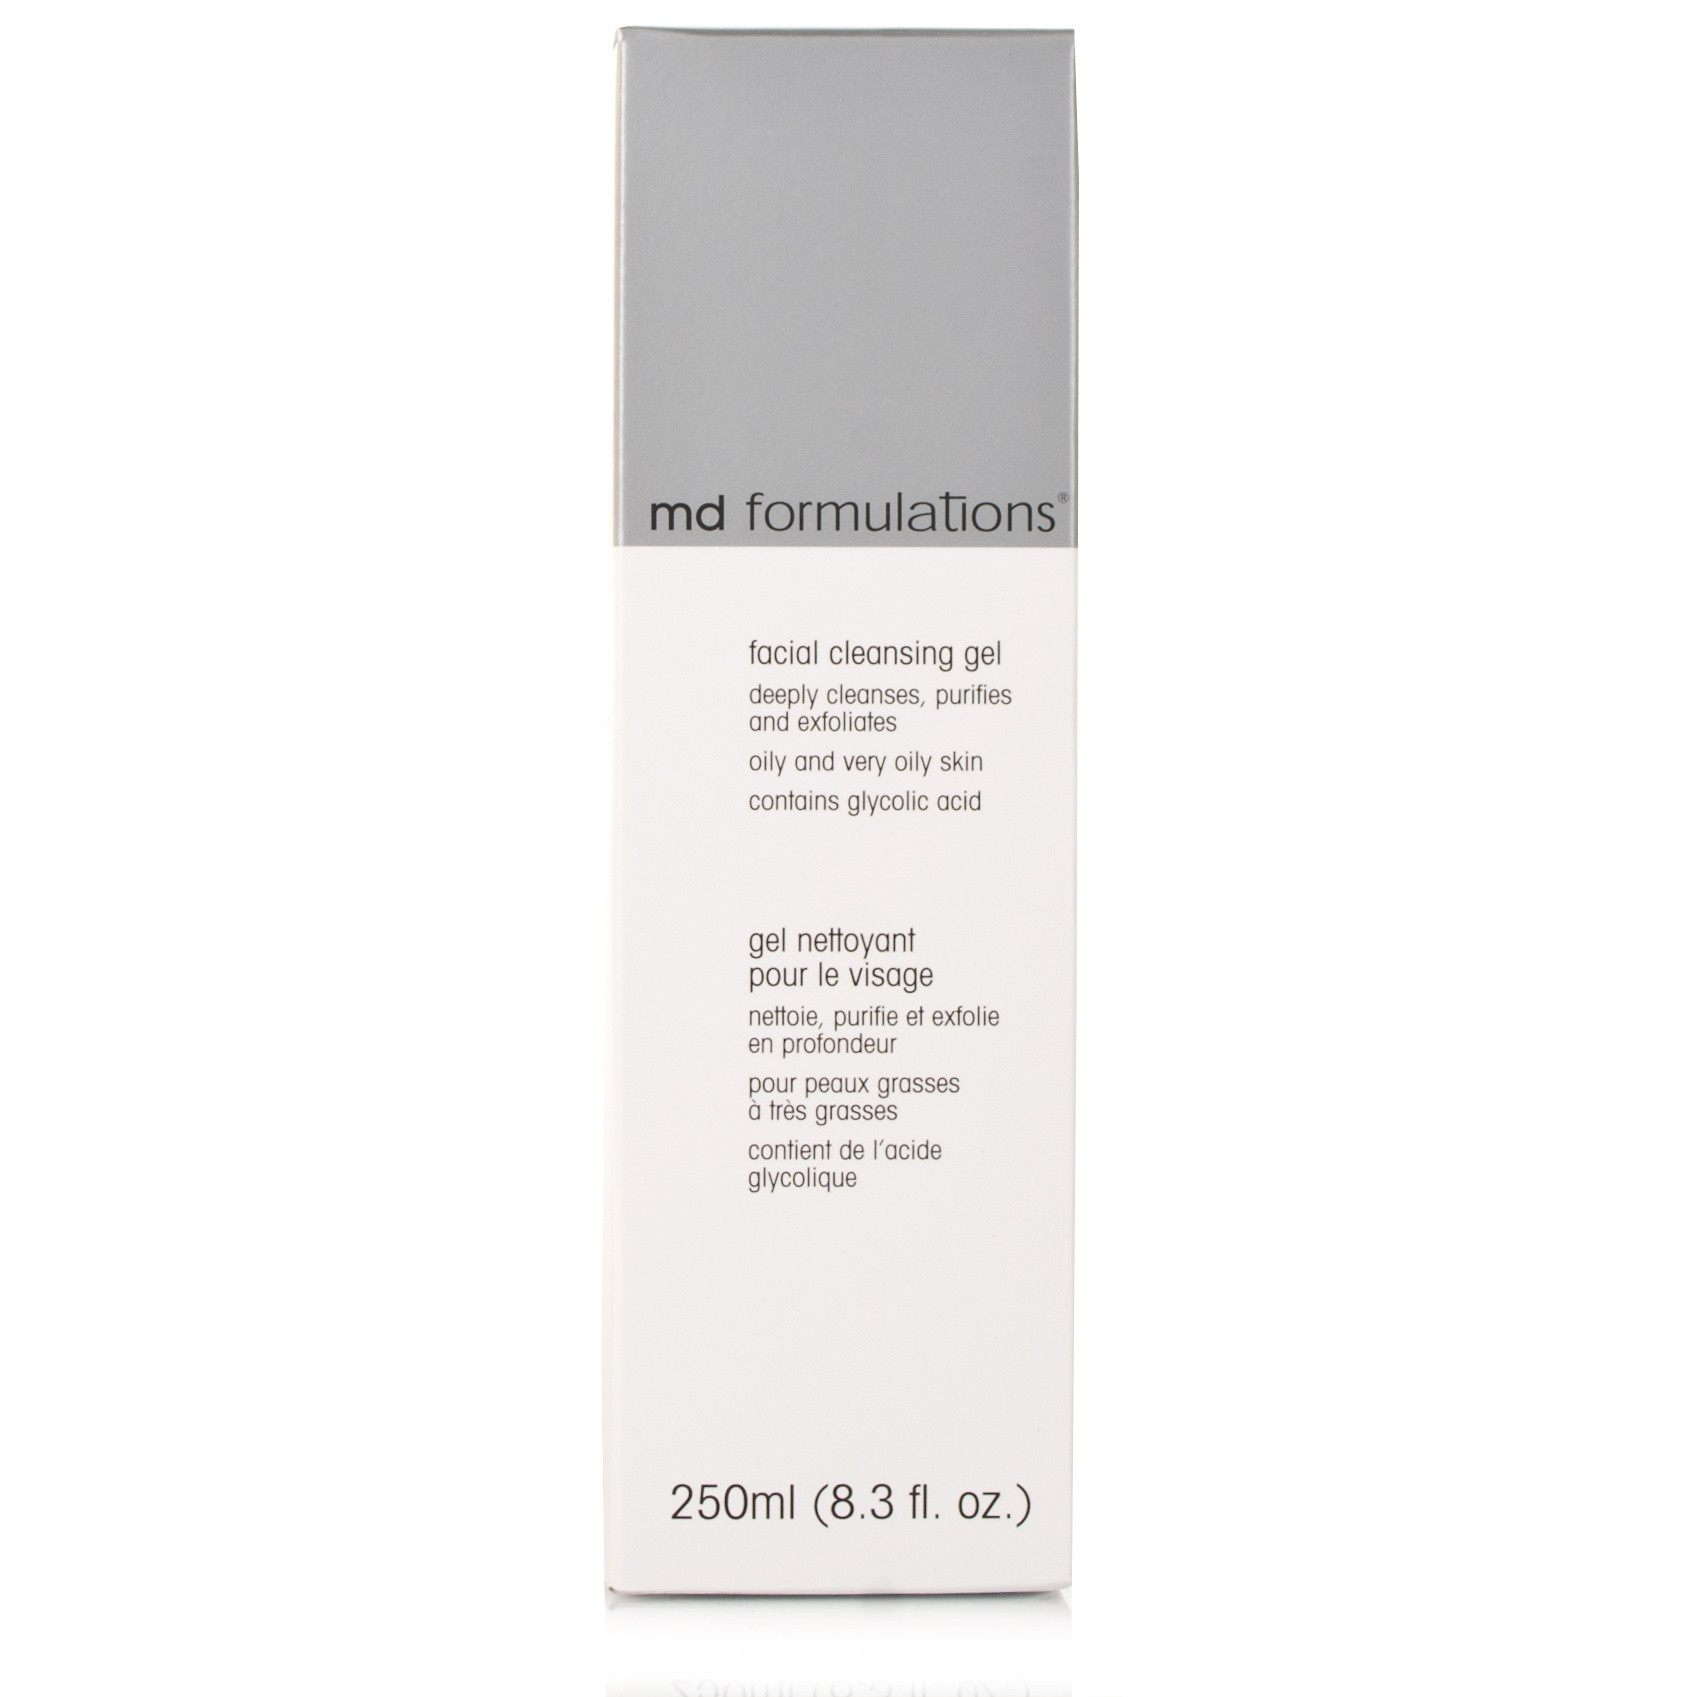 MD Formulations Facial Cleanser Gel Oily and Very Oily Skin